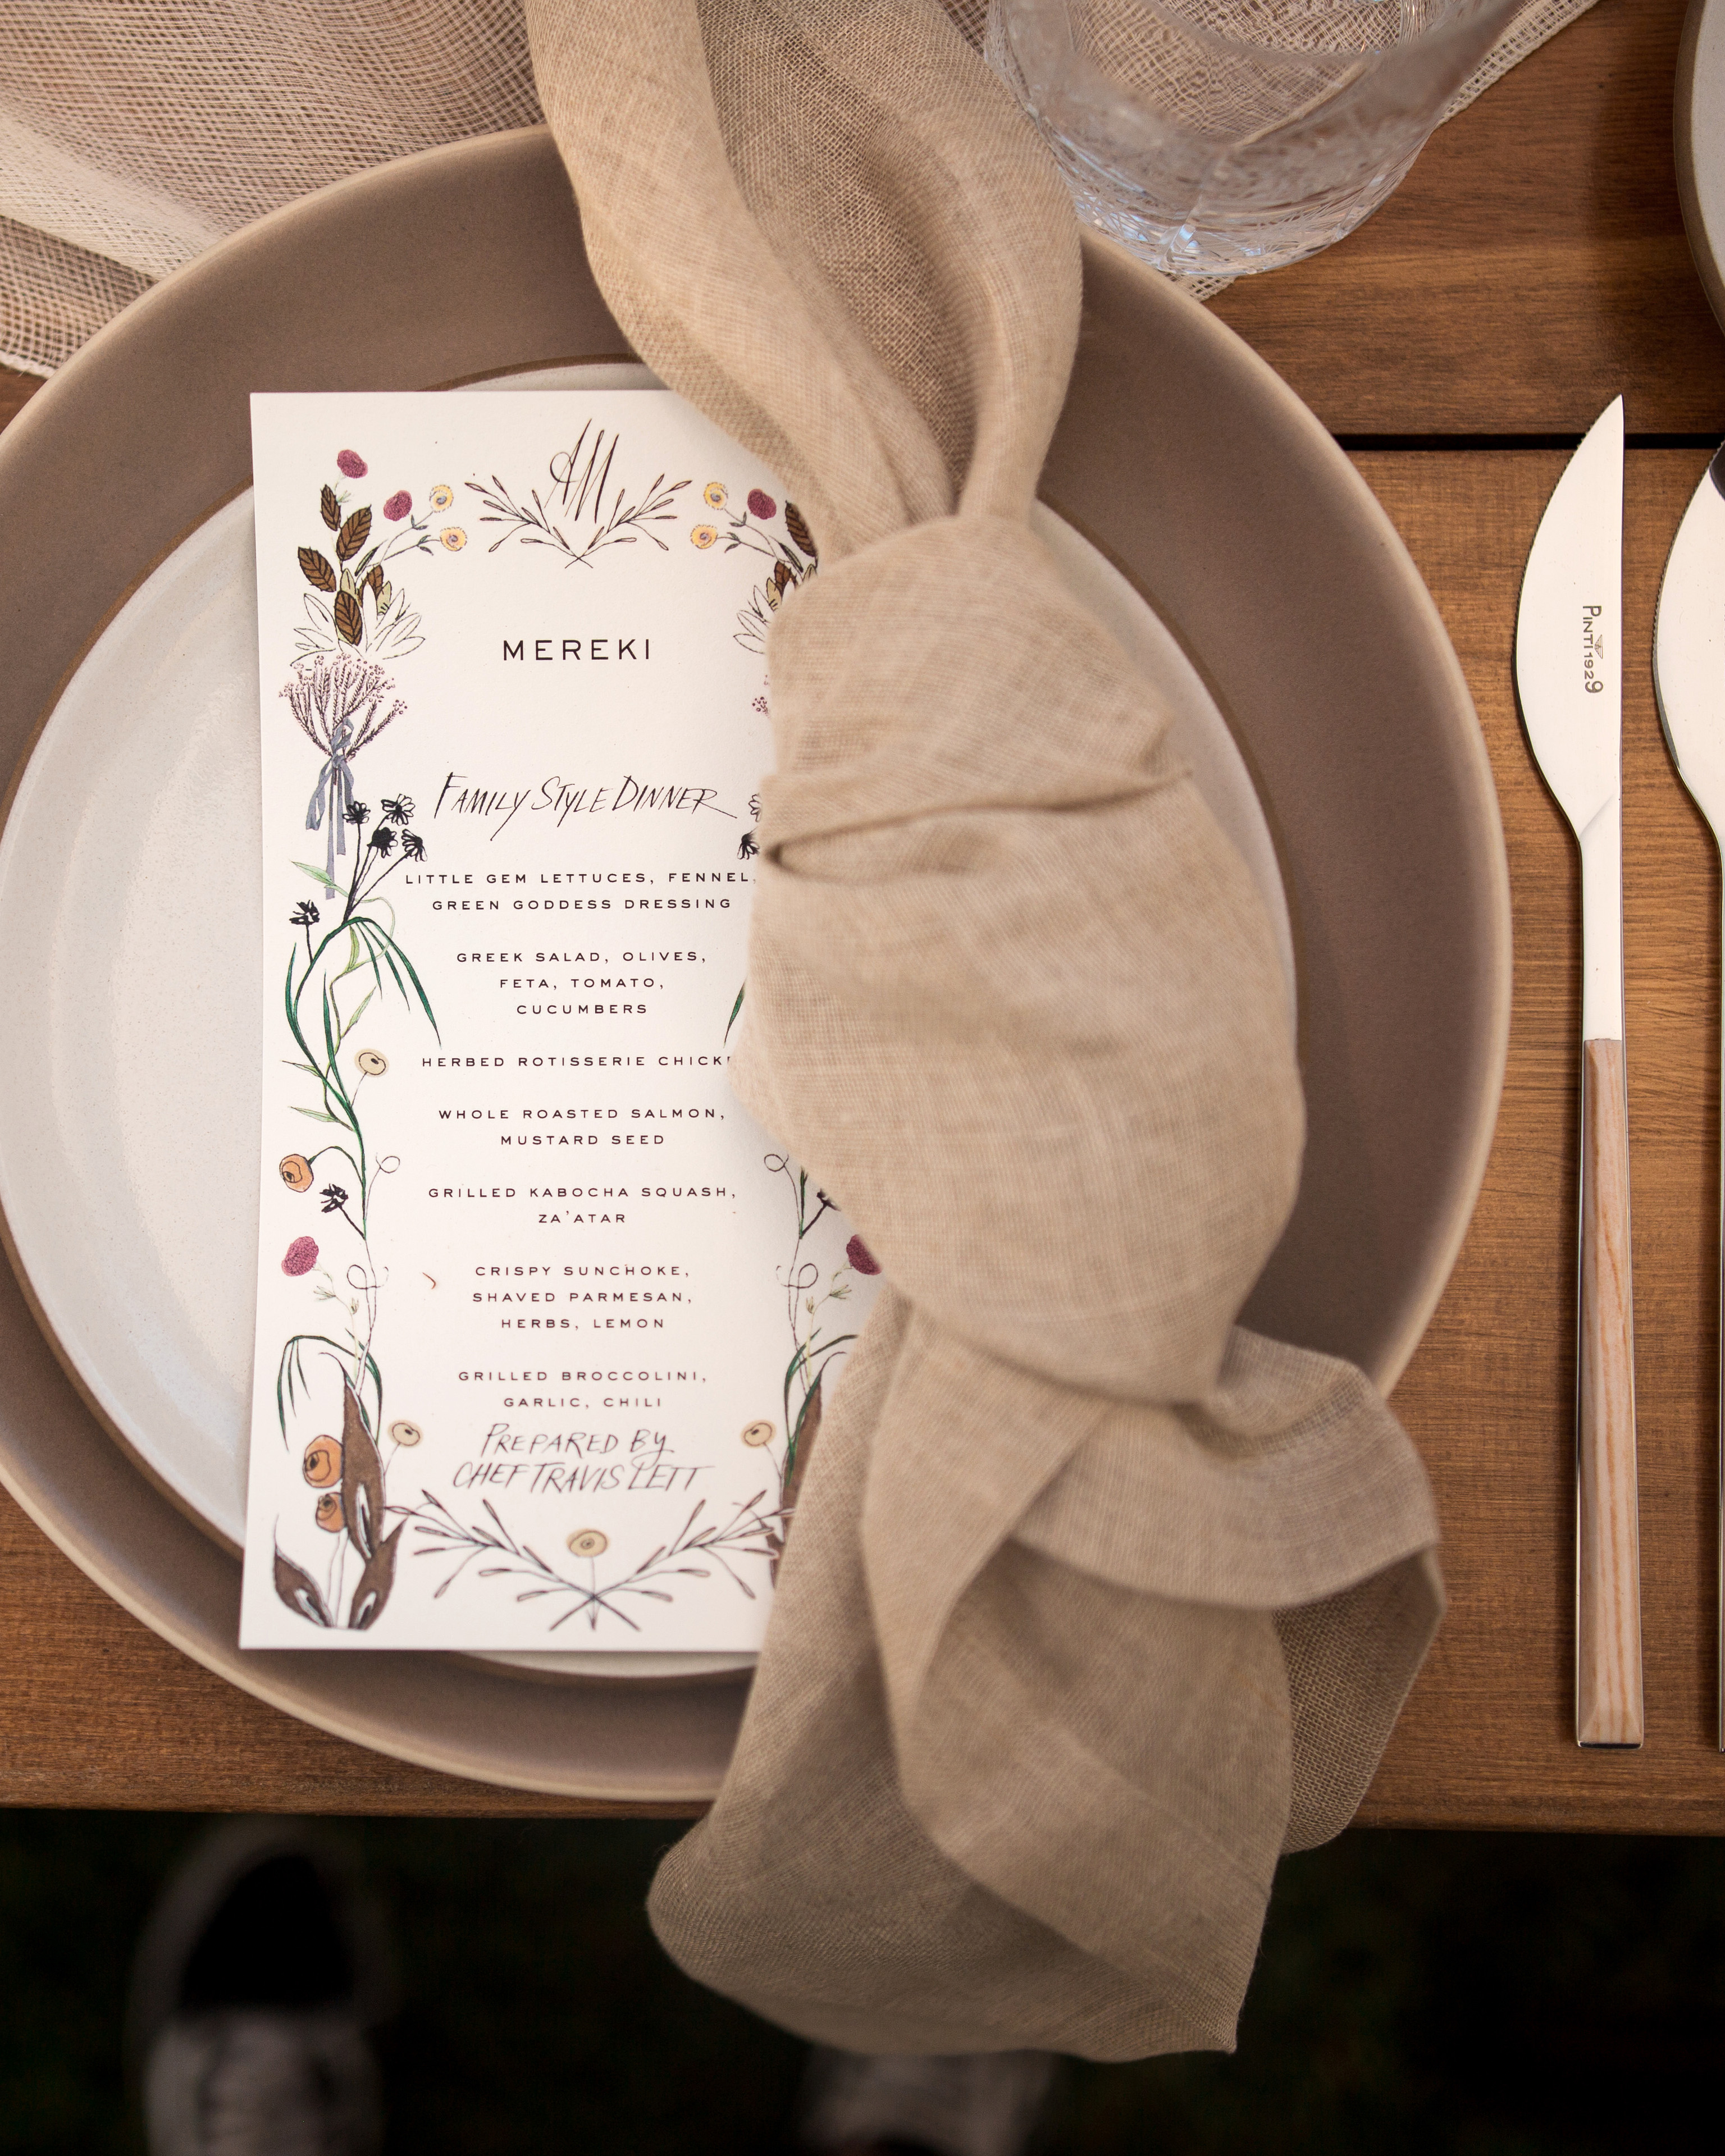 anika max wedding place setting with menu and napkin